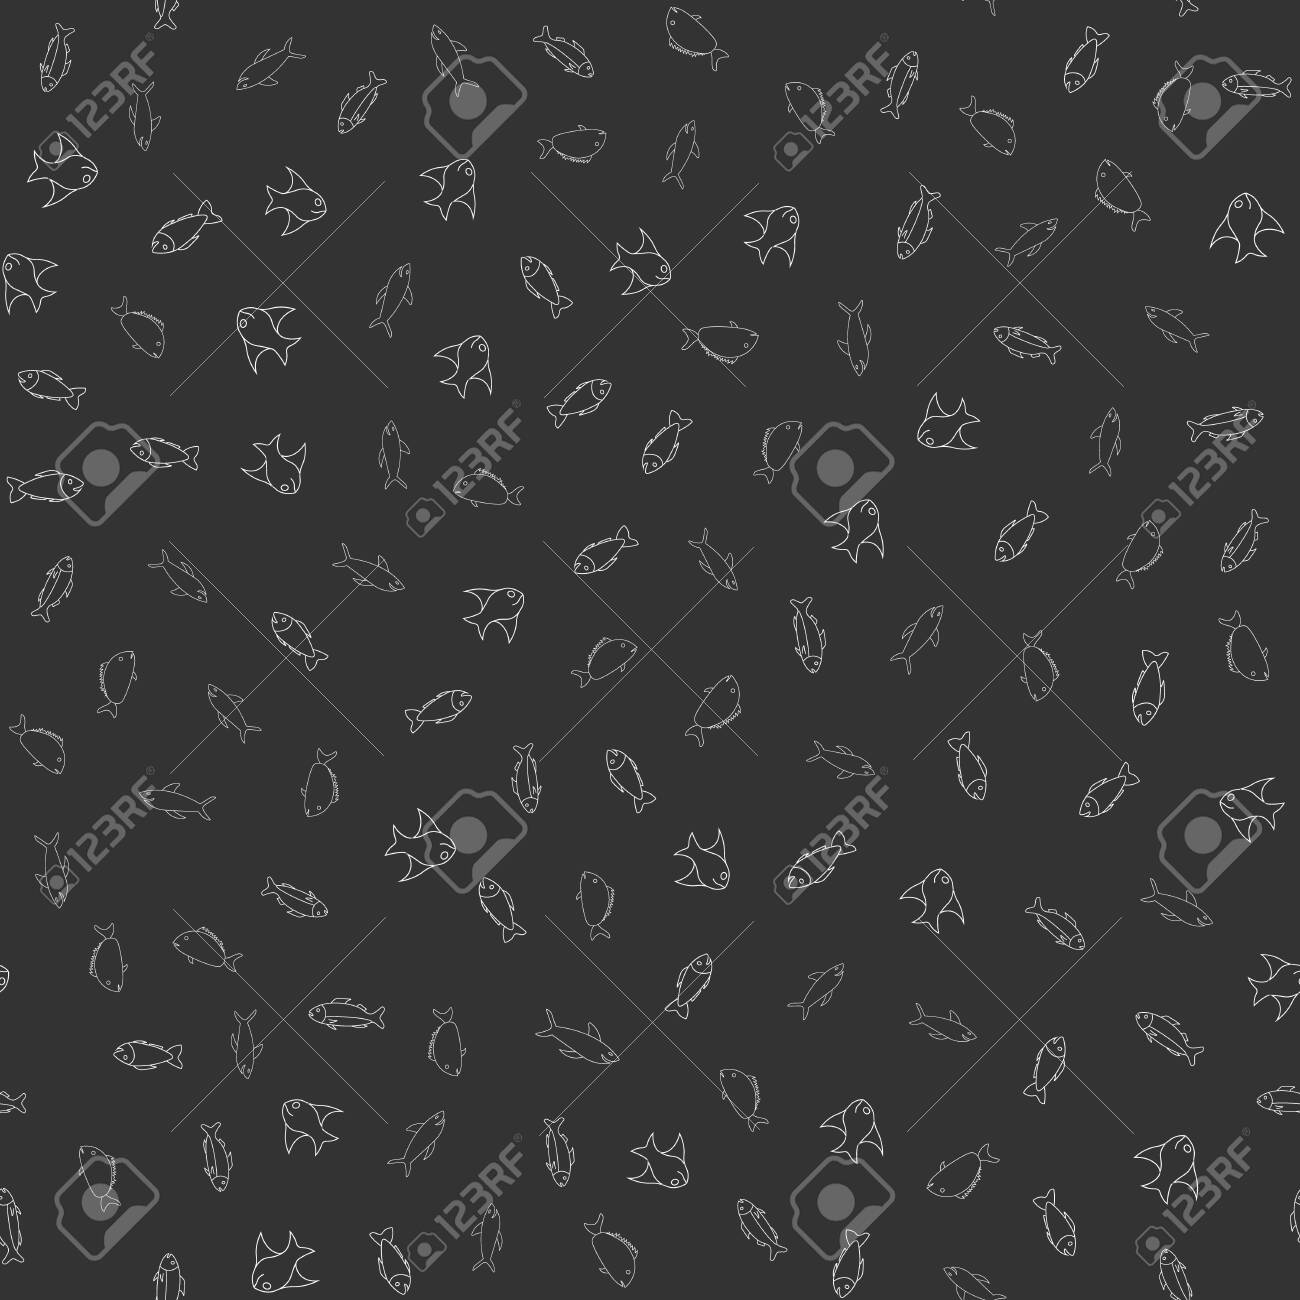 photo stock vector fish themed freehand drawings seamless pattern hand drawn fish elements doodles design for wallpaper